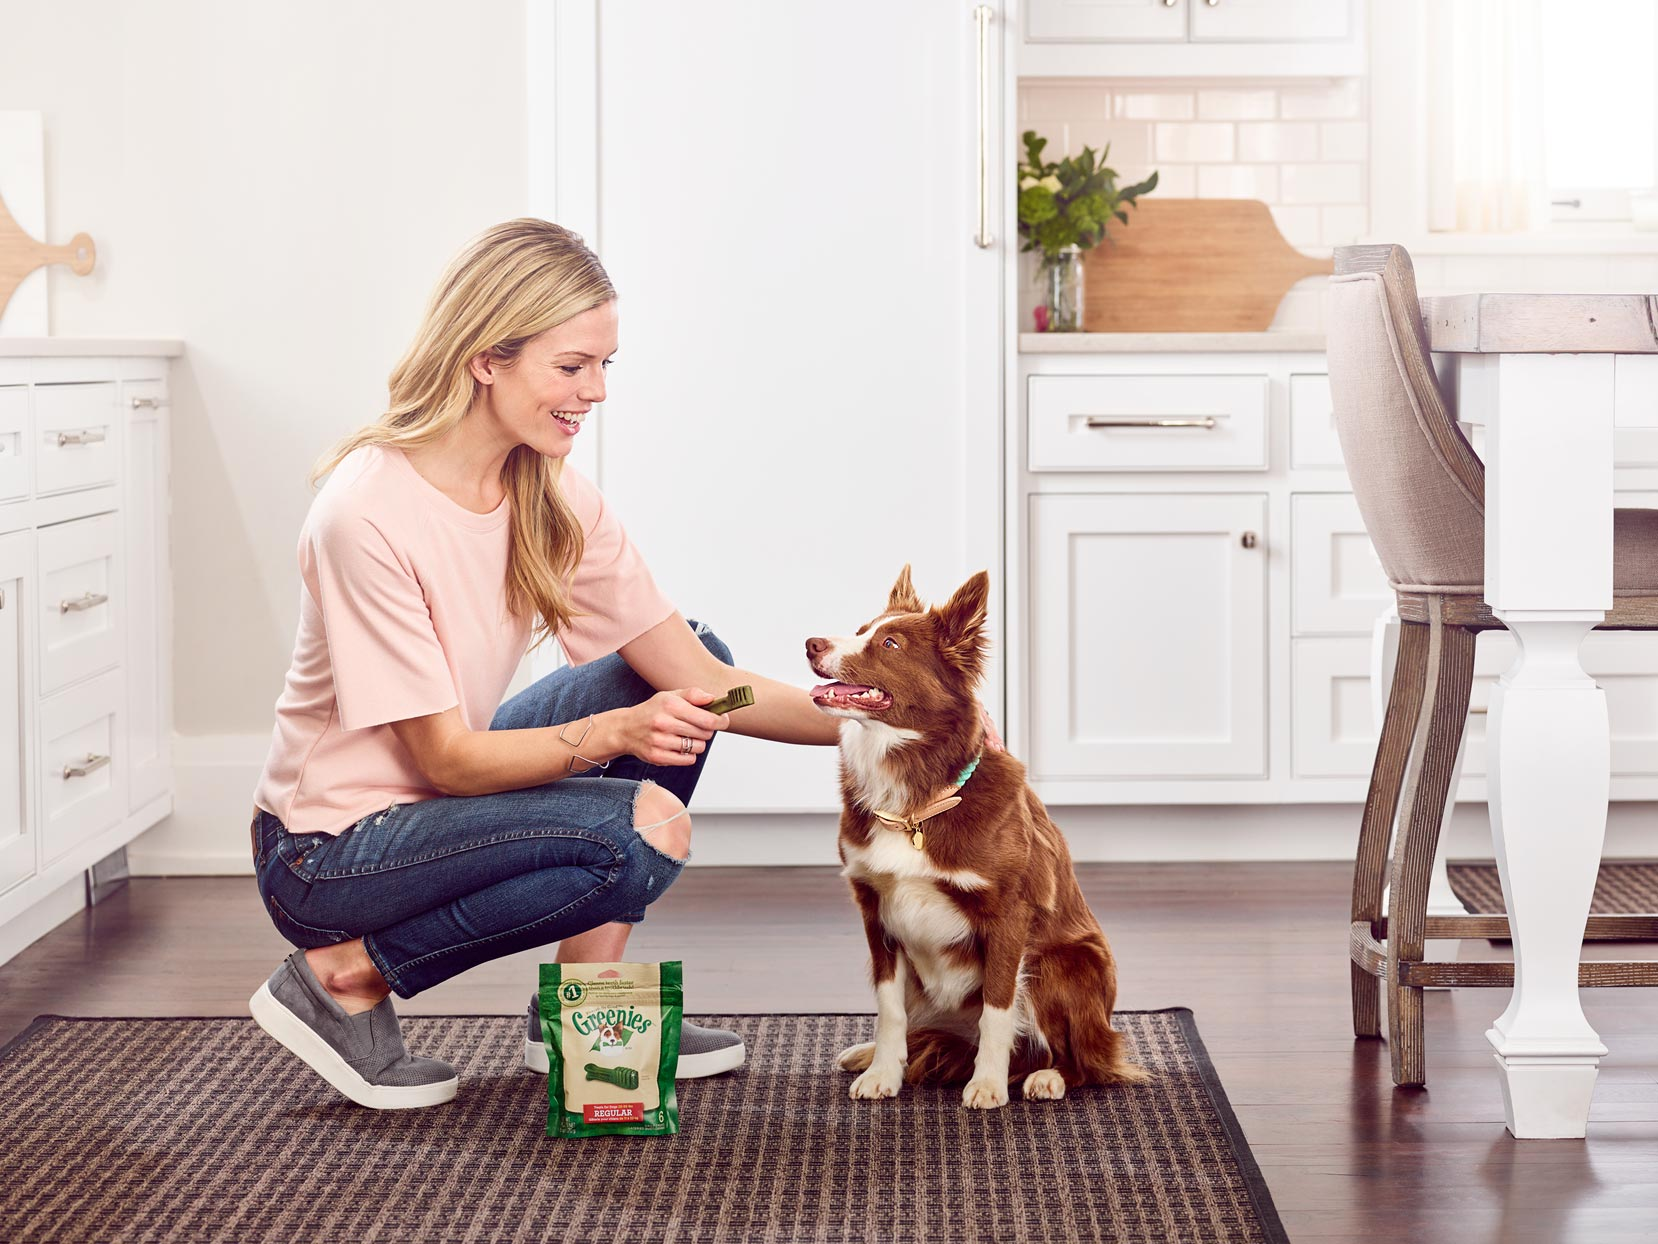 Mark DeLong - Commercial Photography - Woman giving her dog a treat in the kitchen.